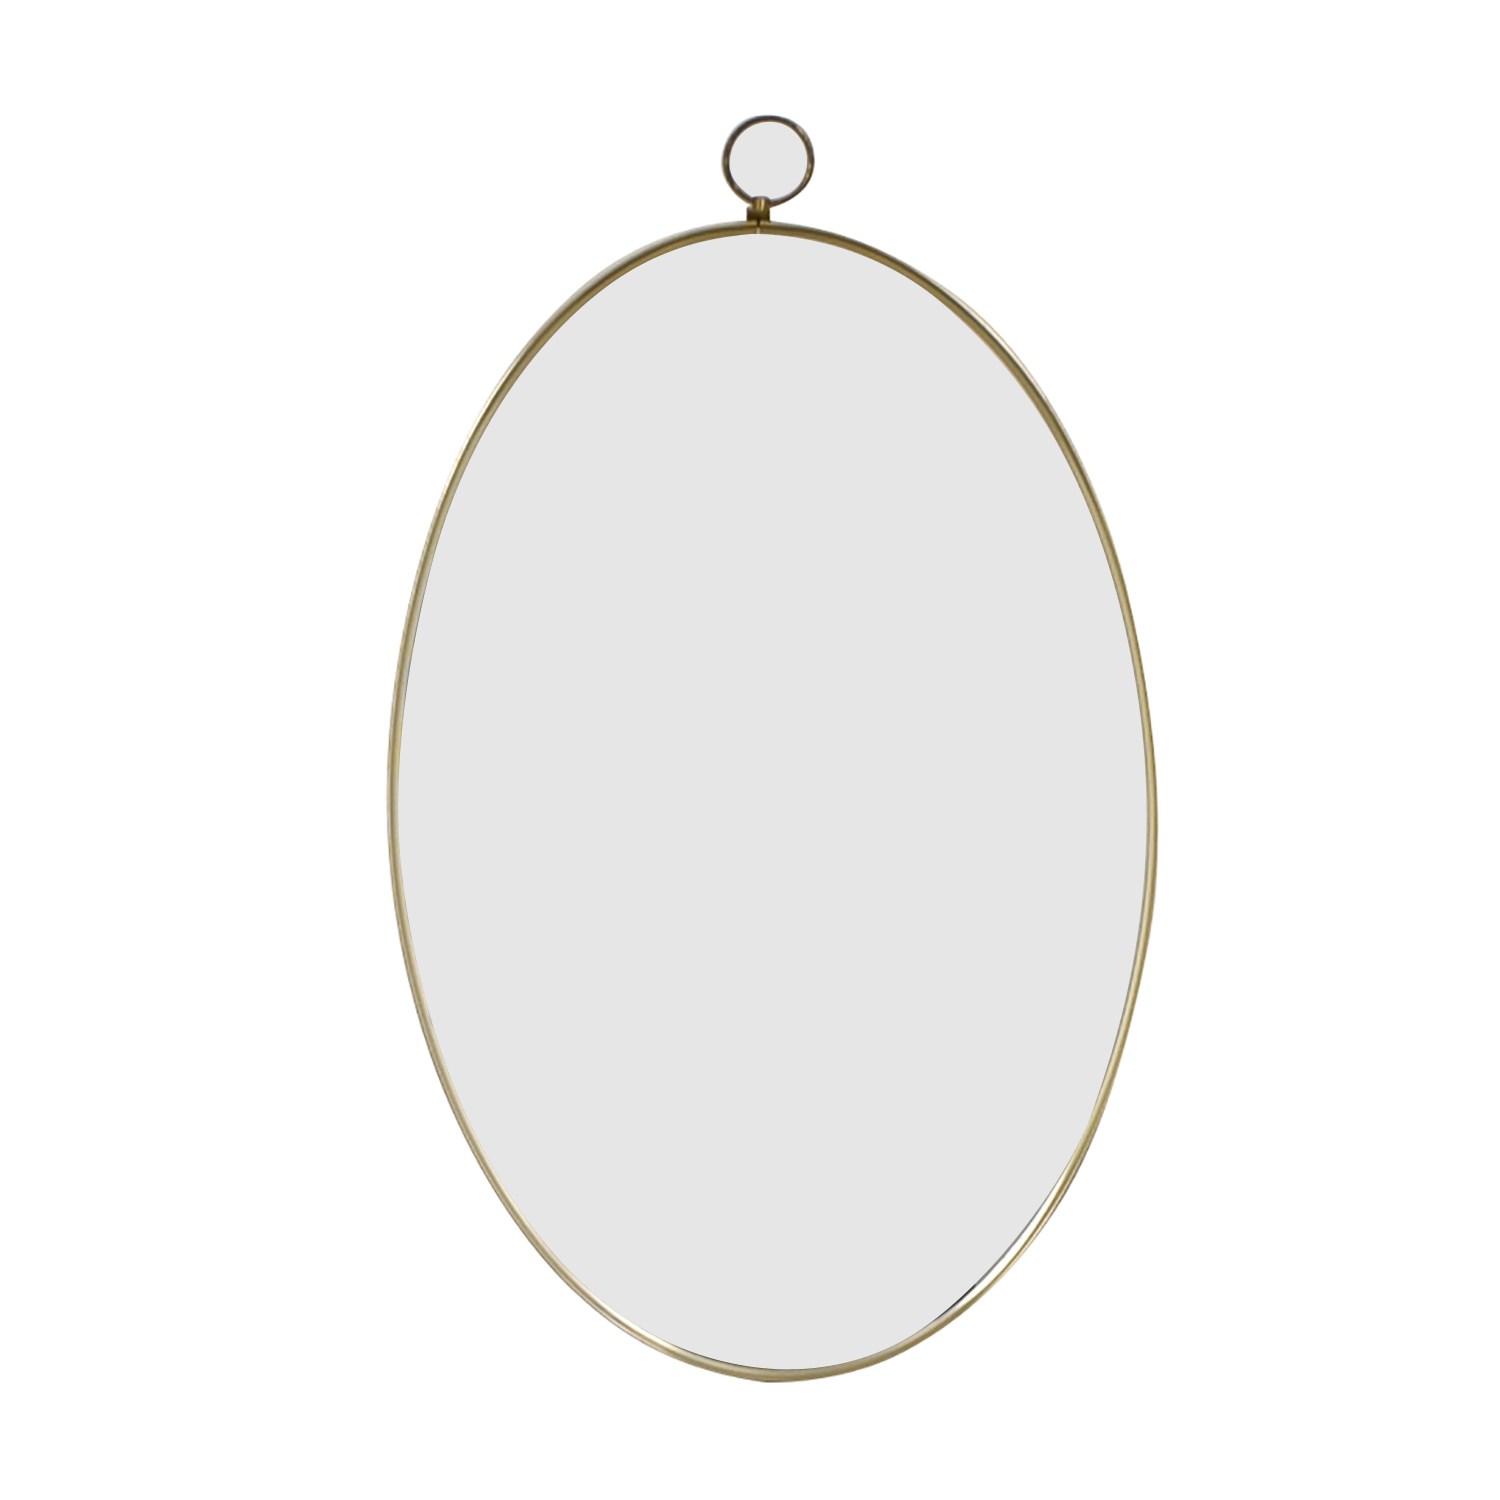 Turner Mfg Co. Vintage Oval Gold Framed Mirror sale